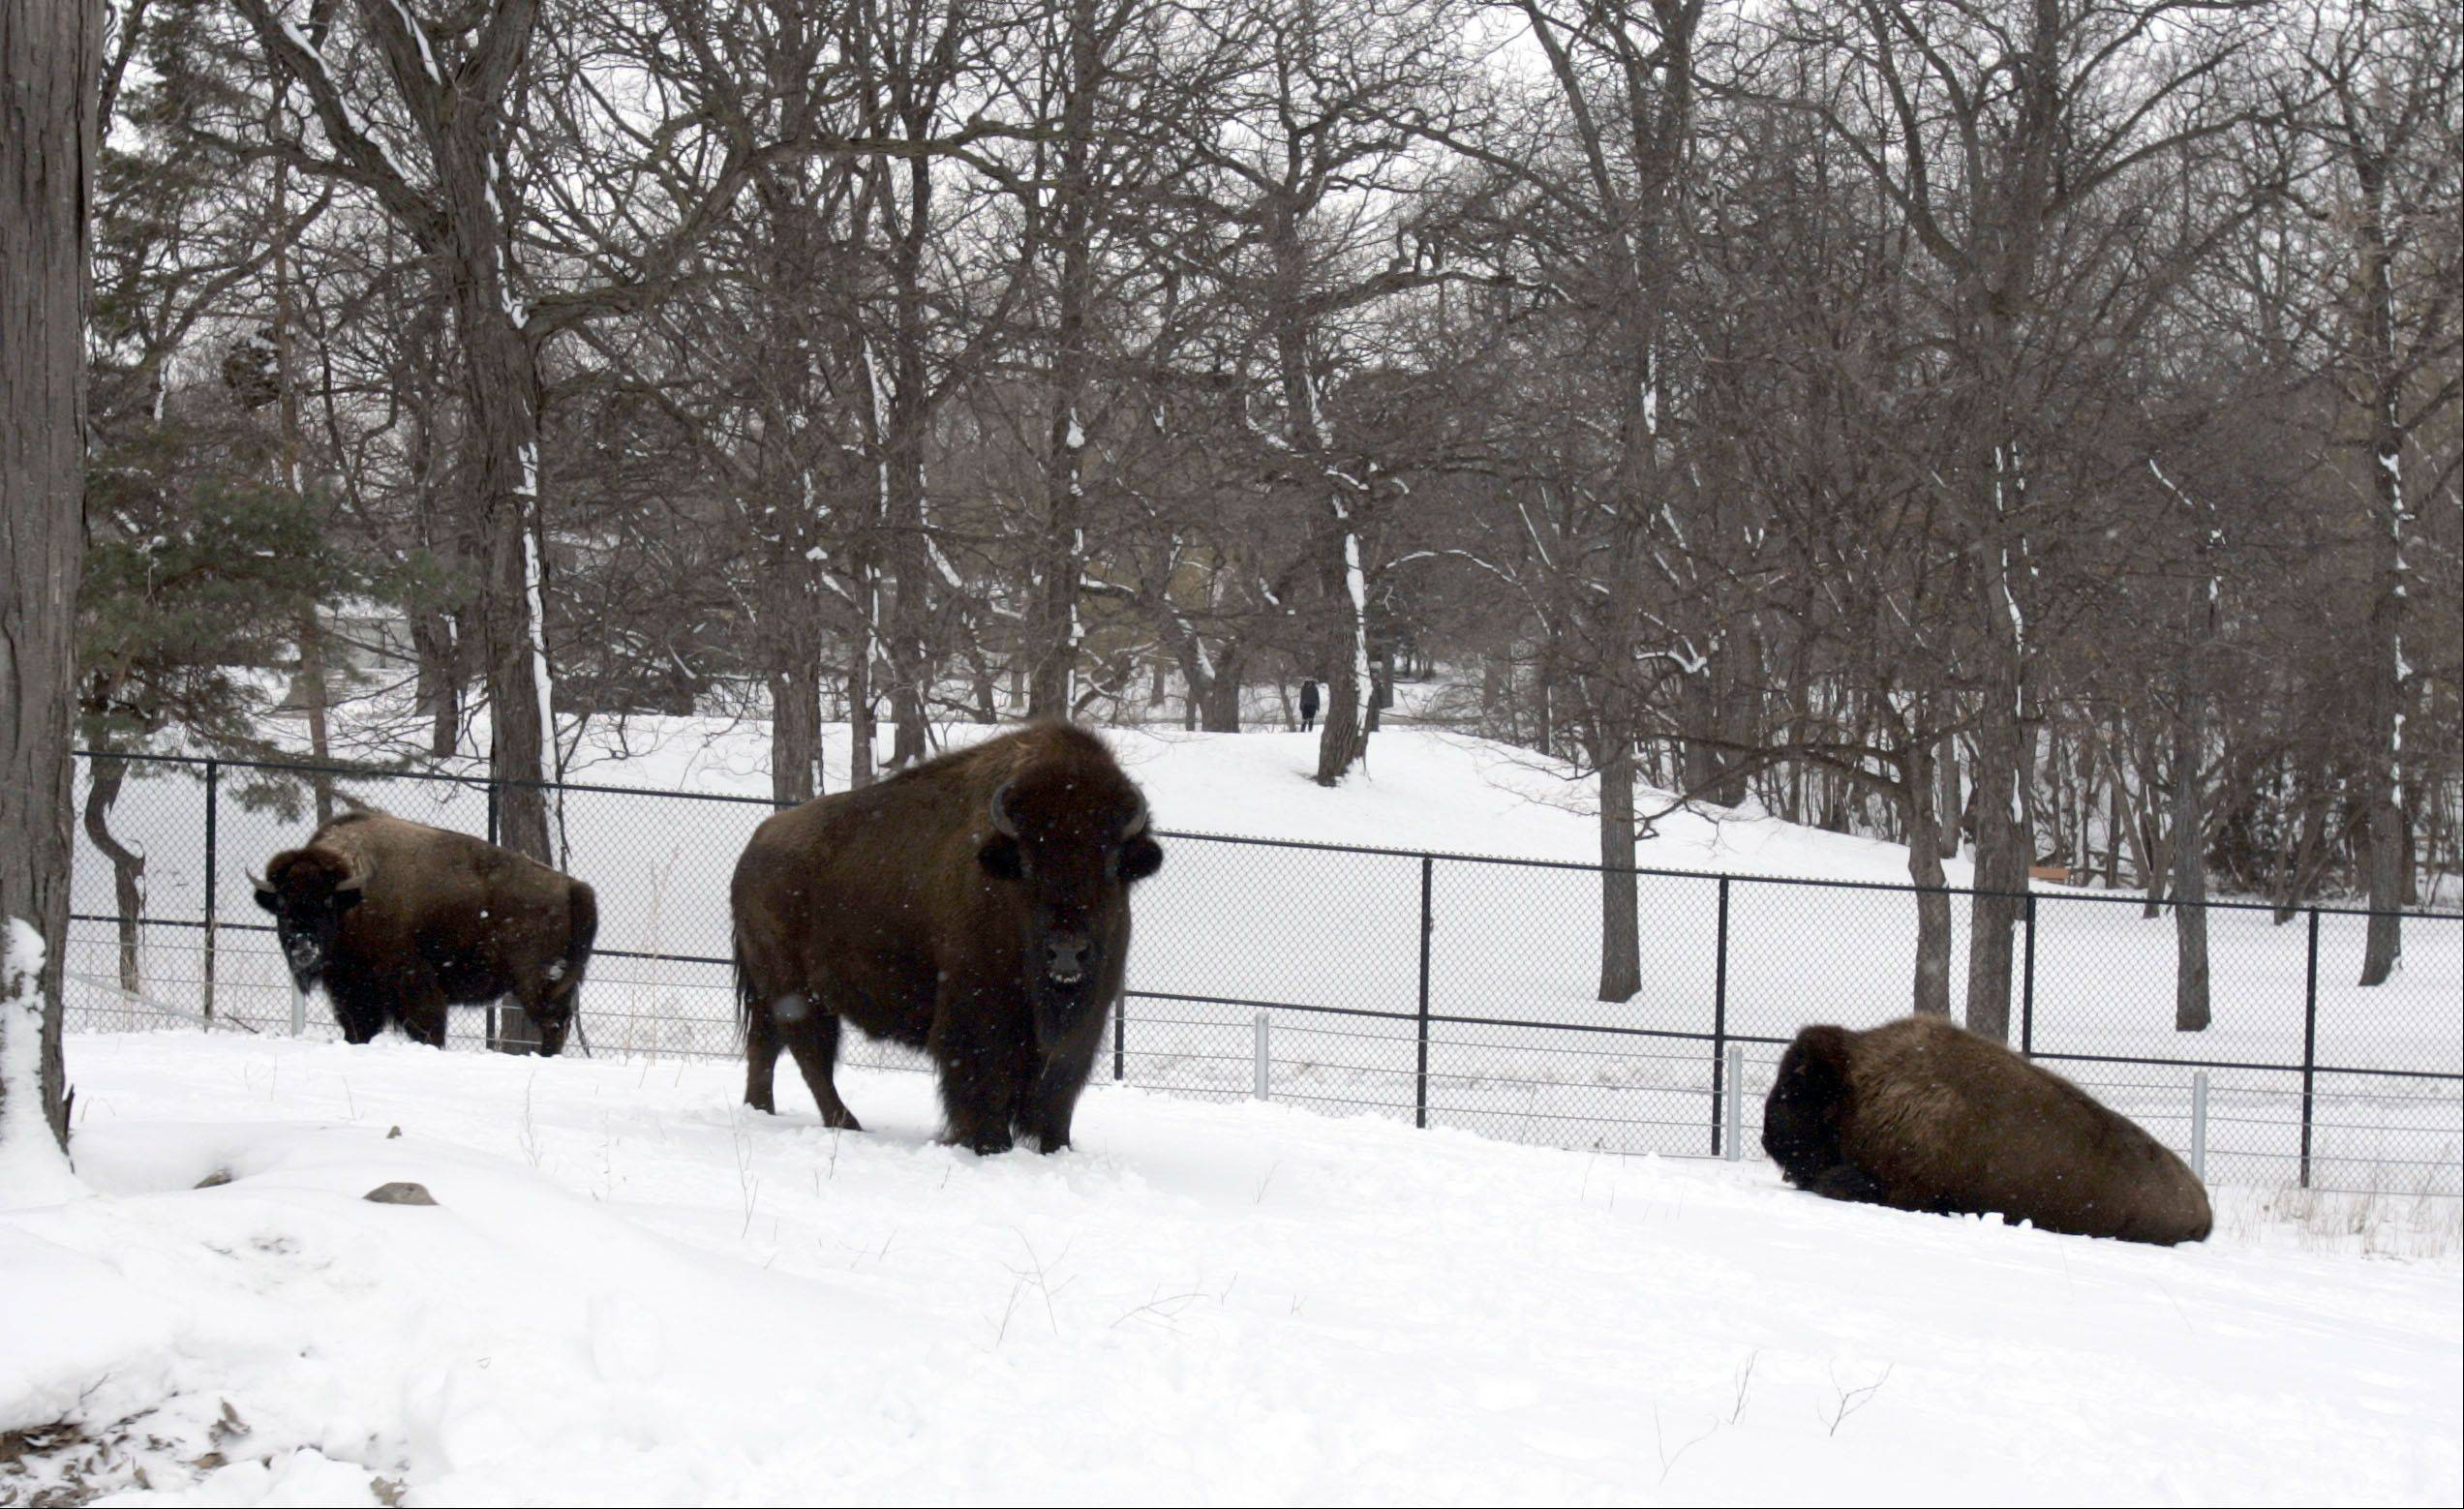 Longtime Lord's Park Zoo bison Pokey, left, was joined this week by two new bison, Becky, middle, and Drew, who were donated by Brookfield Zoo. The newcomers have acclimated themselves well to their new home, Elgin Parks Superintendent Jim Bell said.